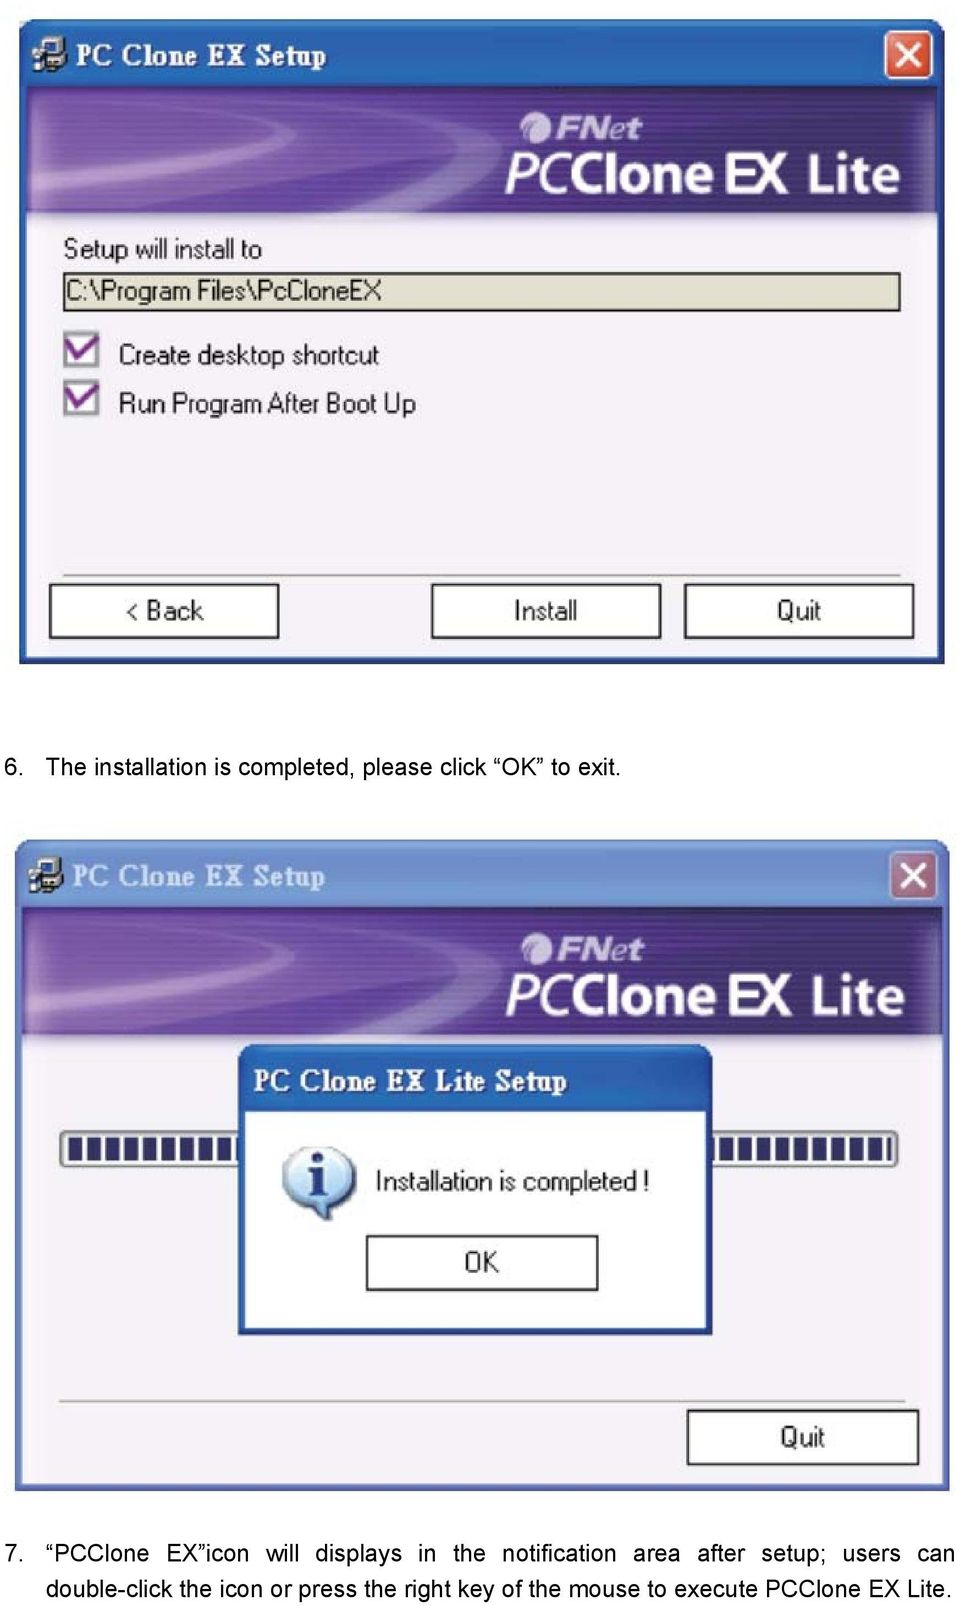 PCClone EX icon will displays in the notification area